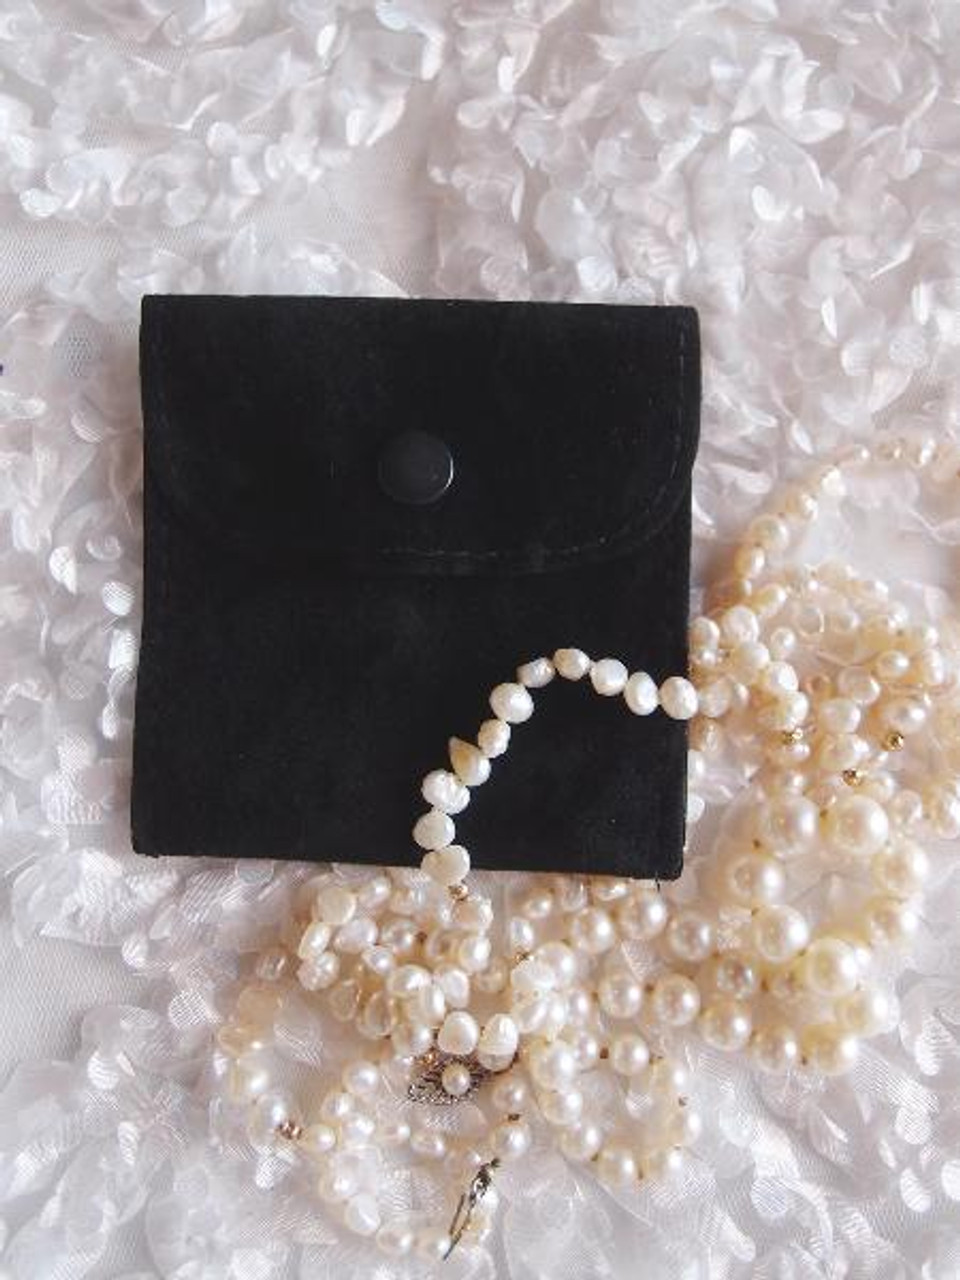 Wholesale Velvet Jewelry Bags, Black Velvet Jewelry Pouch with Snap Fastener 3 x 3 inches J134-39 | Packaging Decor